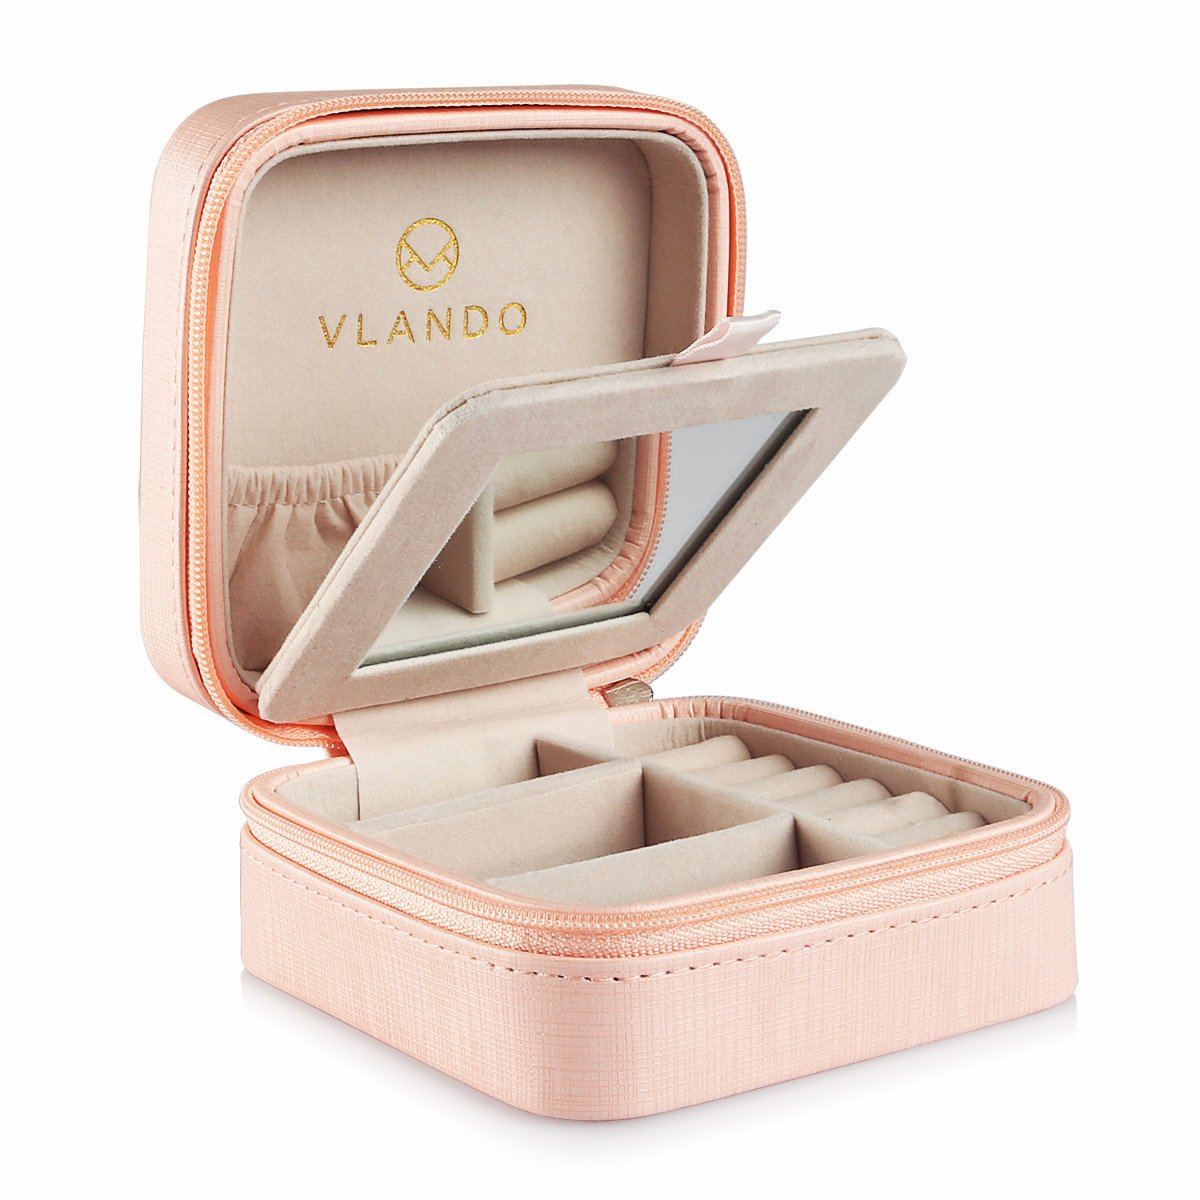 Vlando Macaron Small Jewelry Box with Mirror, Travel Storage Case for Rings and Earrings -Pink